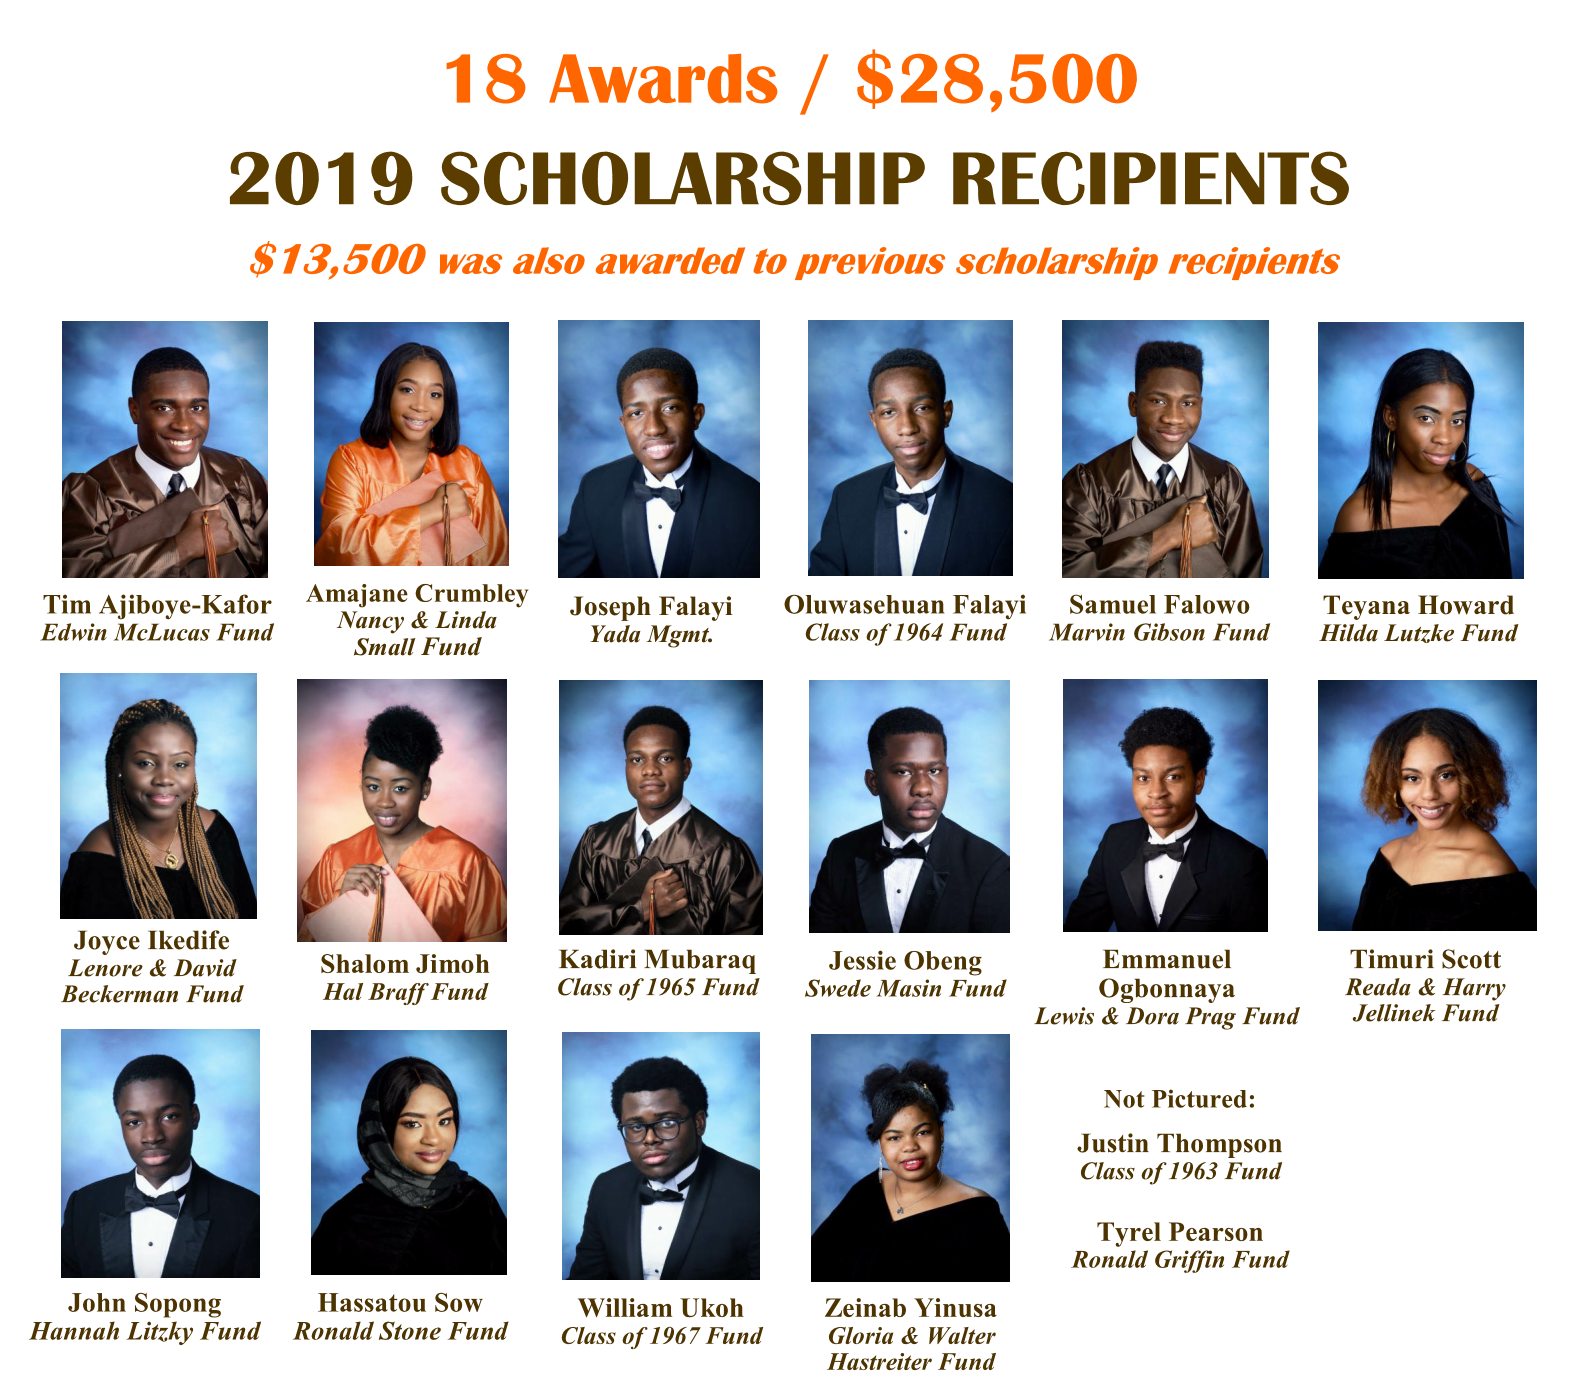 2019 SCHOLARSHIP STUDENTS